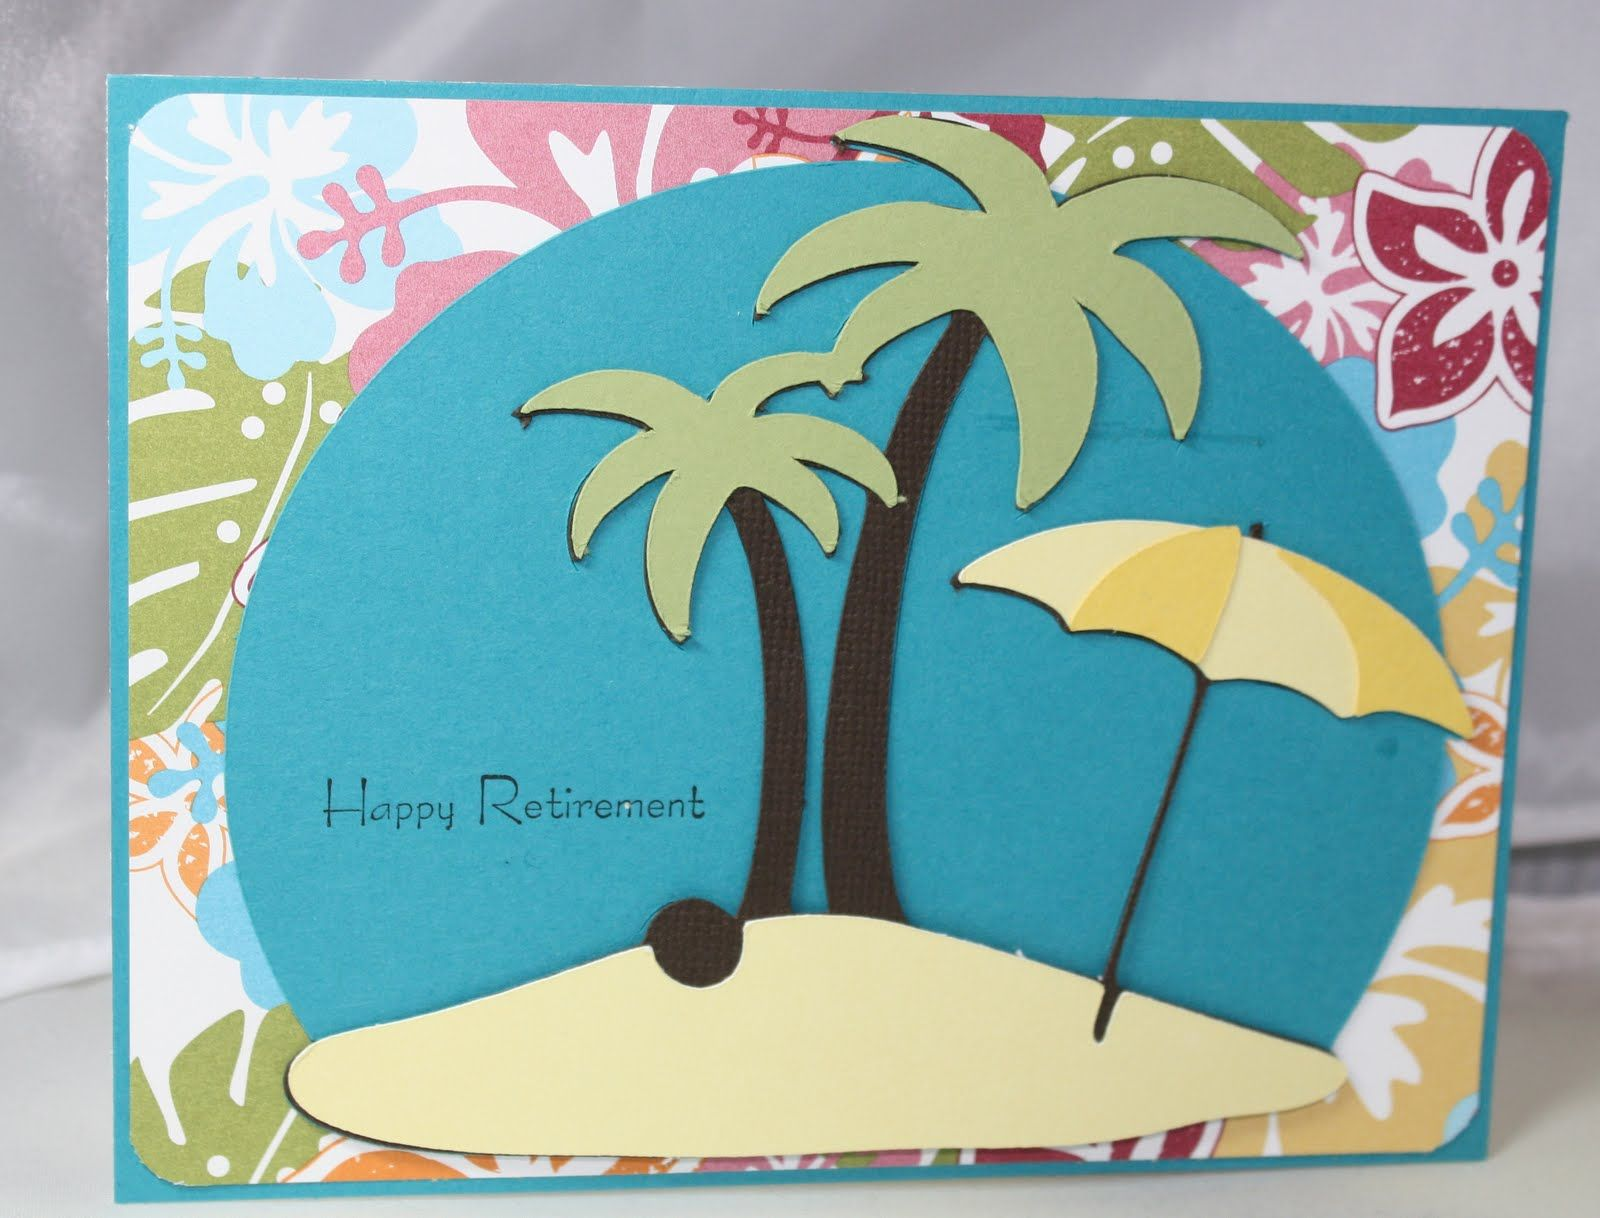 Card funny retirement greeting cards inspiration pinterest image search results for cricut teacher cards kristyandbryce Gallery